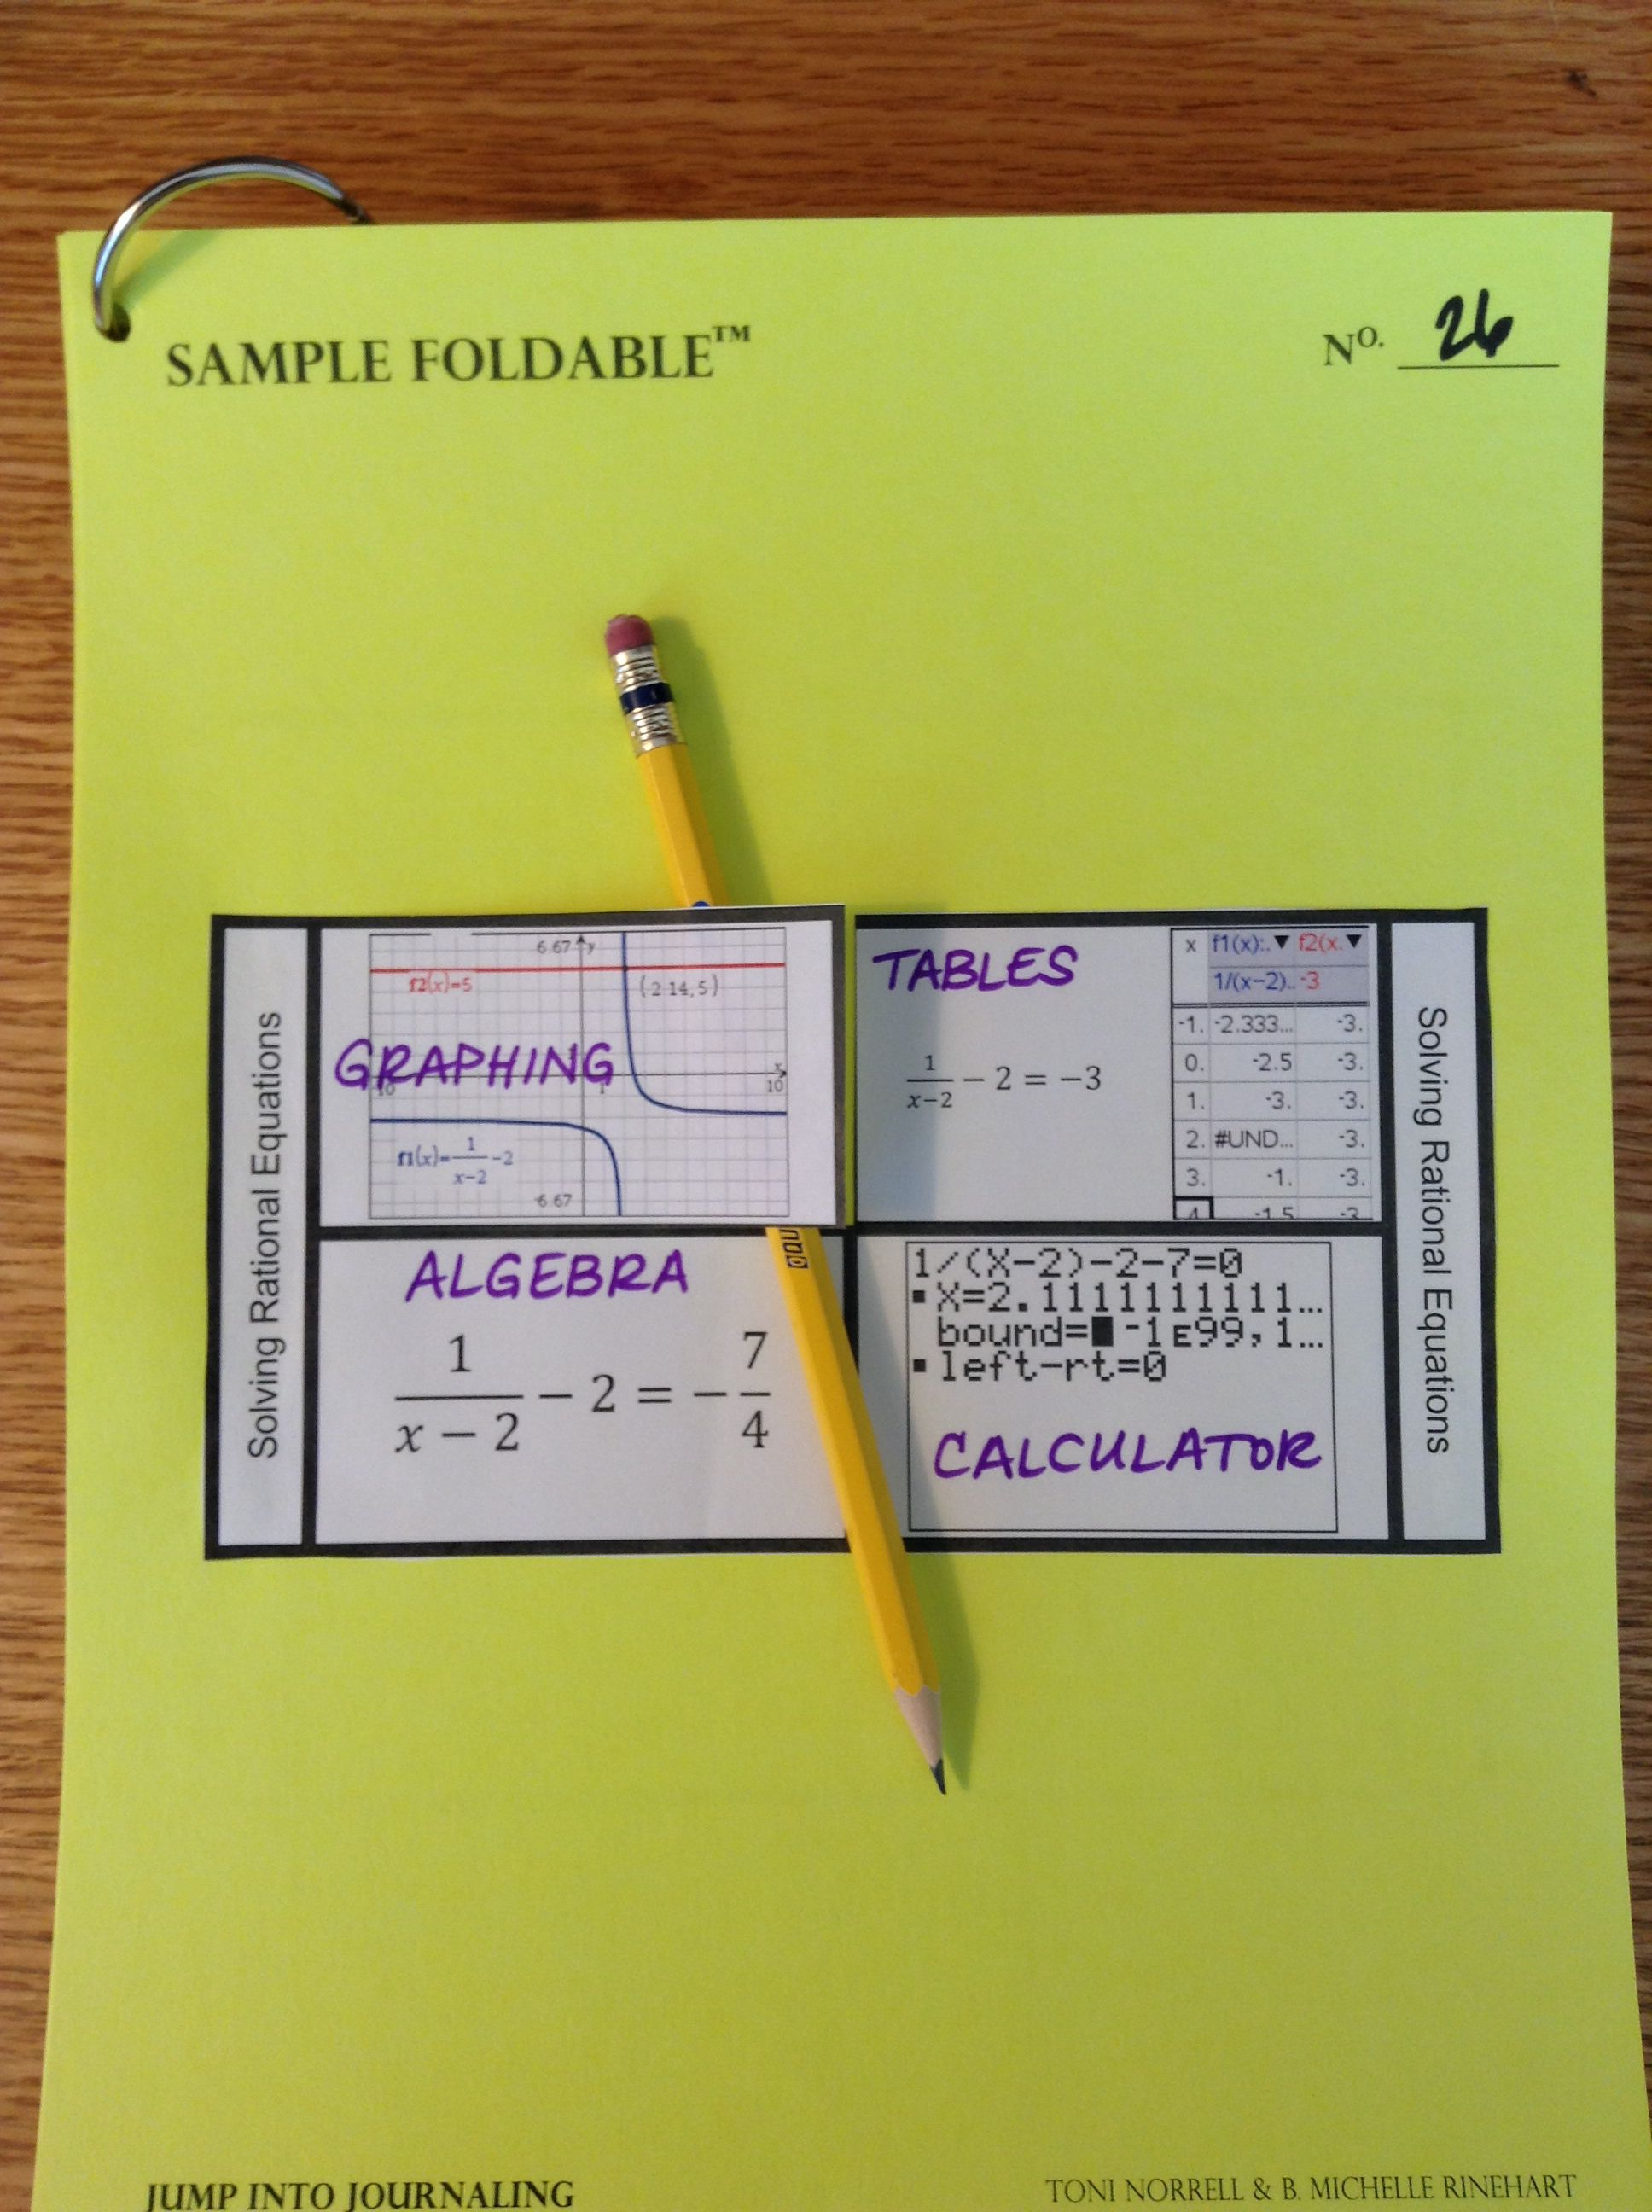 Solving Rational Equations Foldable Using Multiple Representations And Ti Nspire And Ti 84